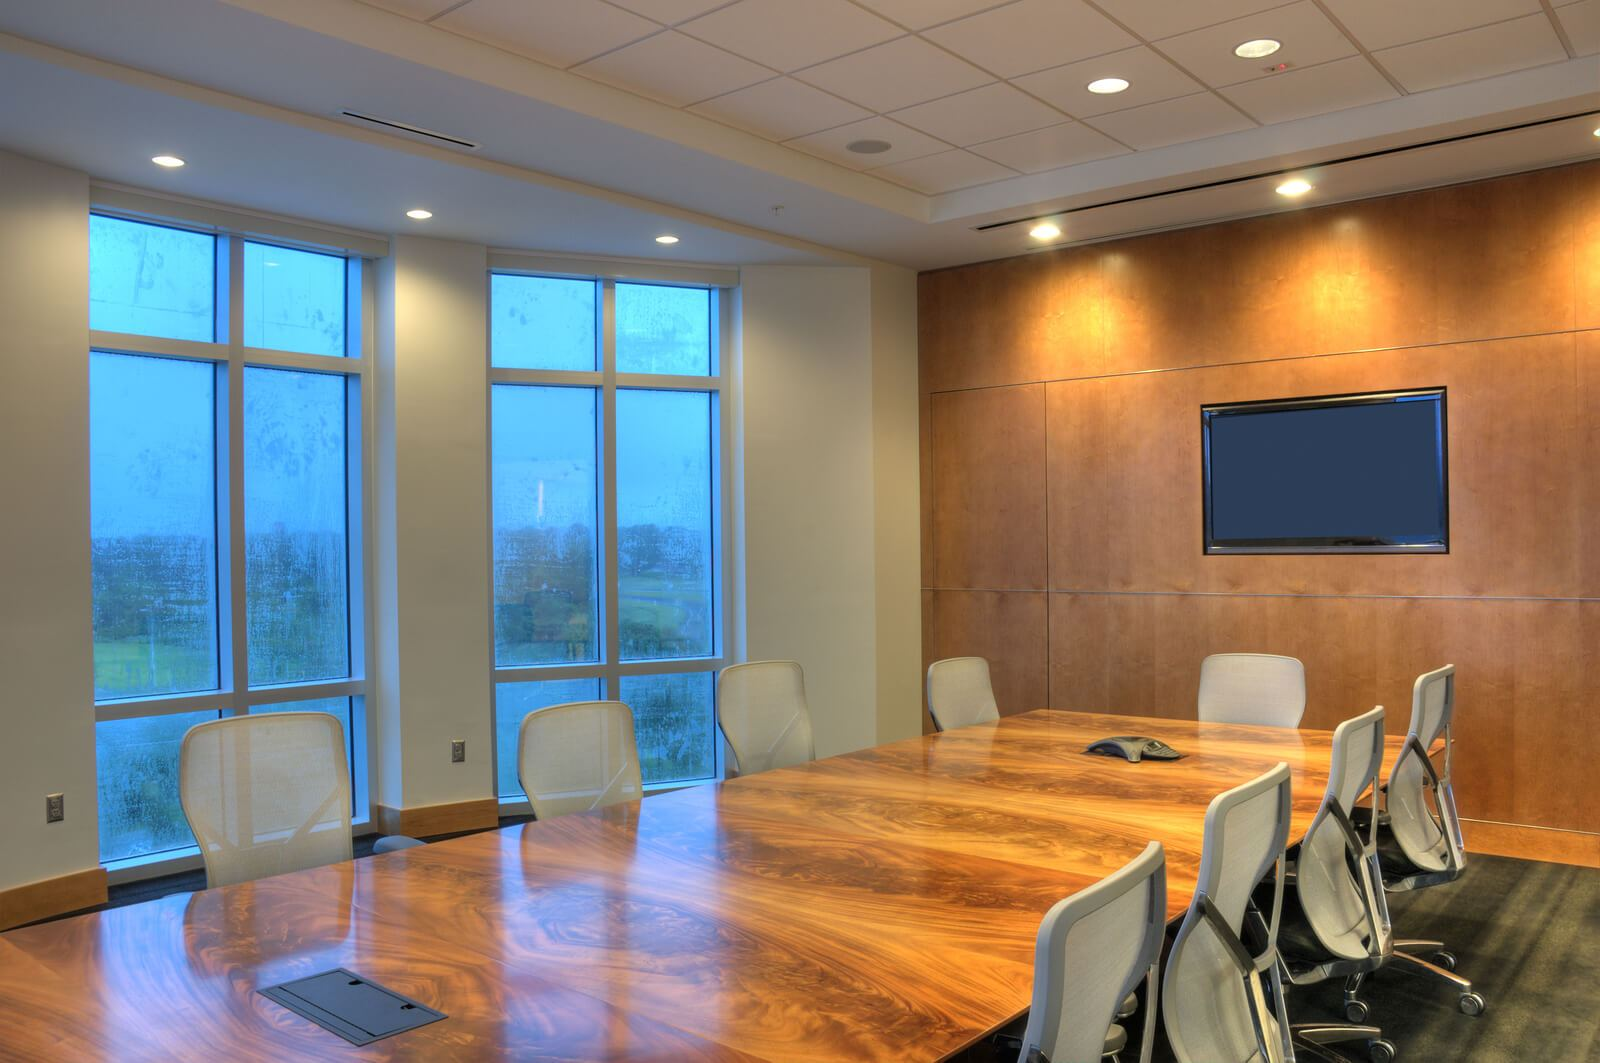 office interior design lighting meeting room